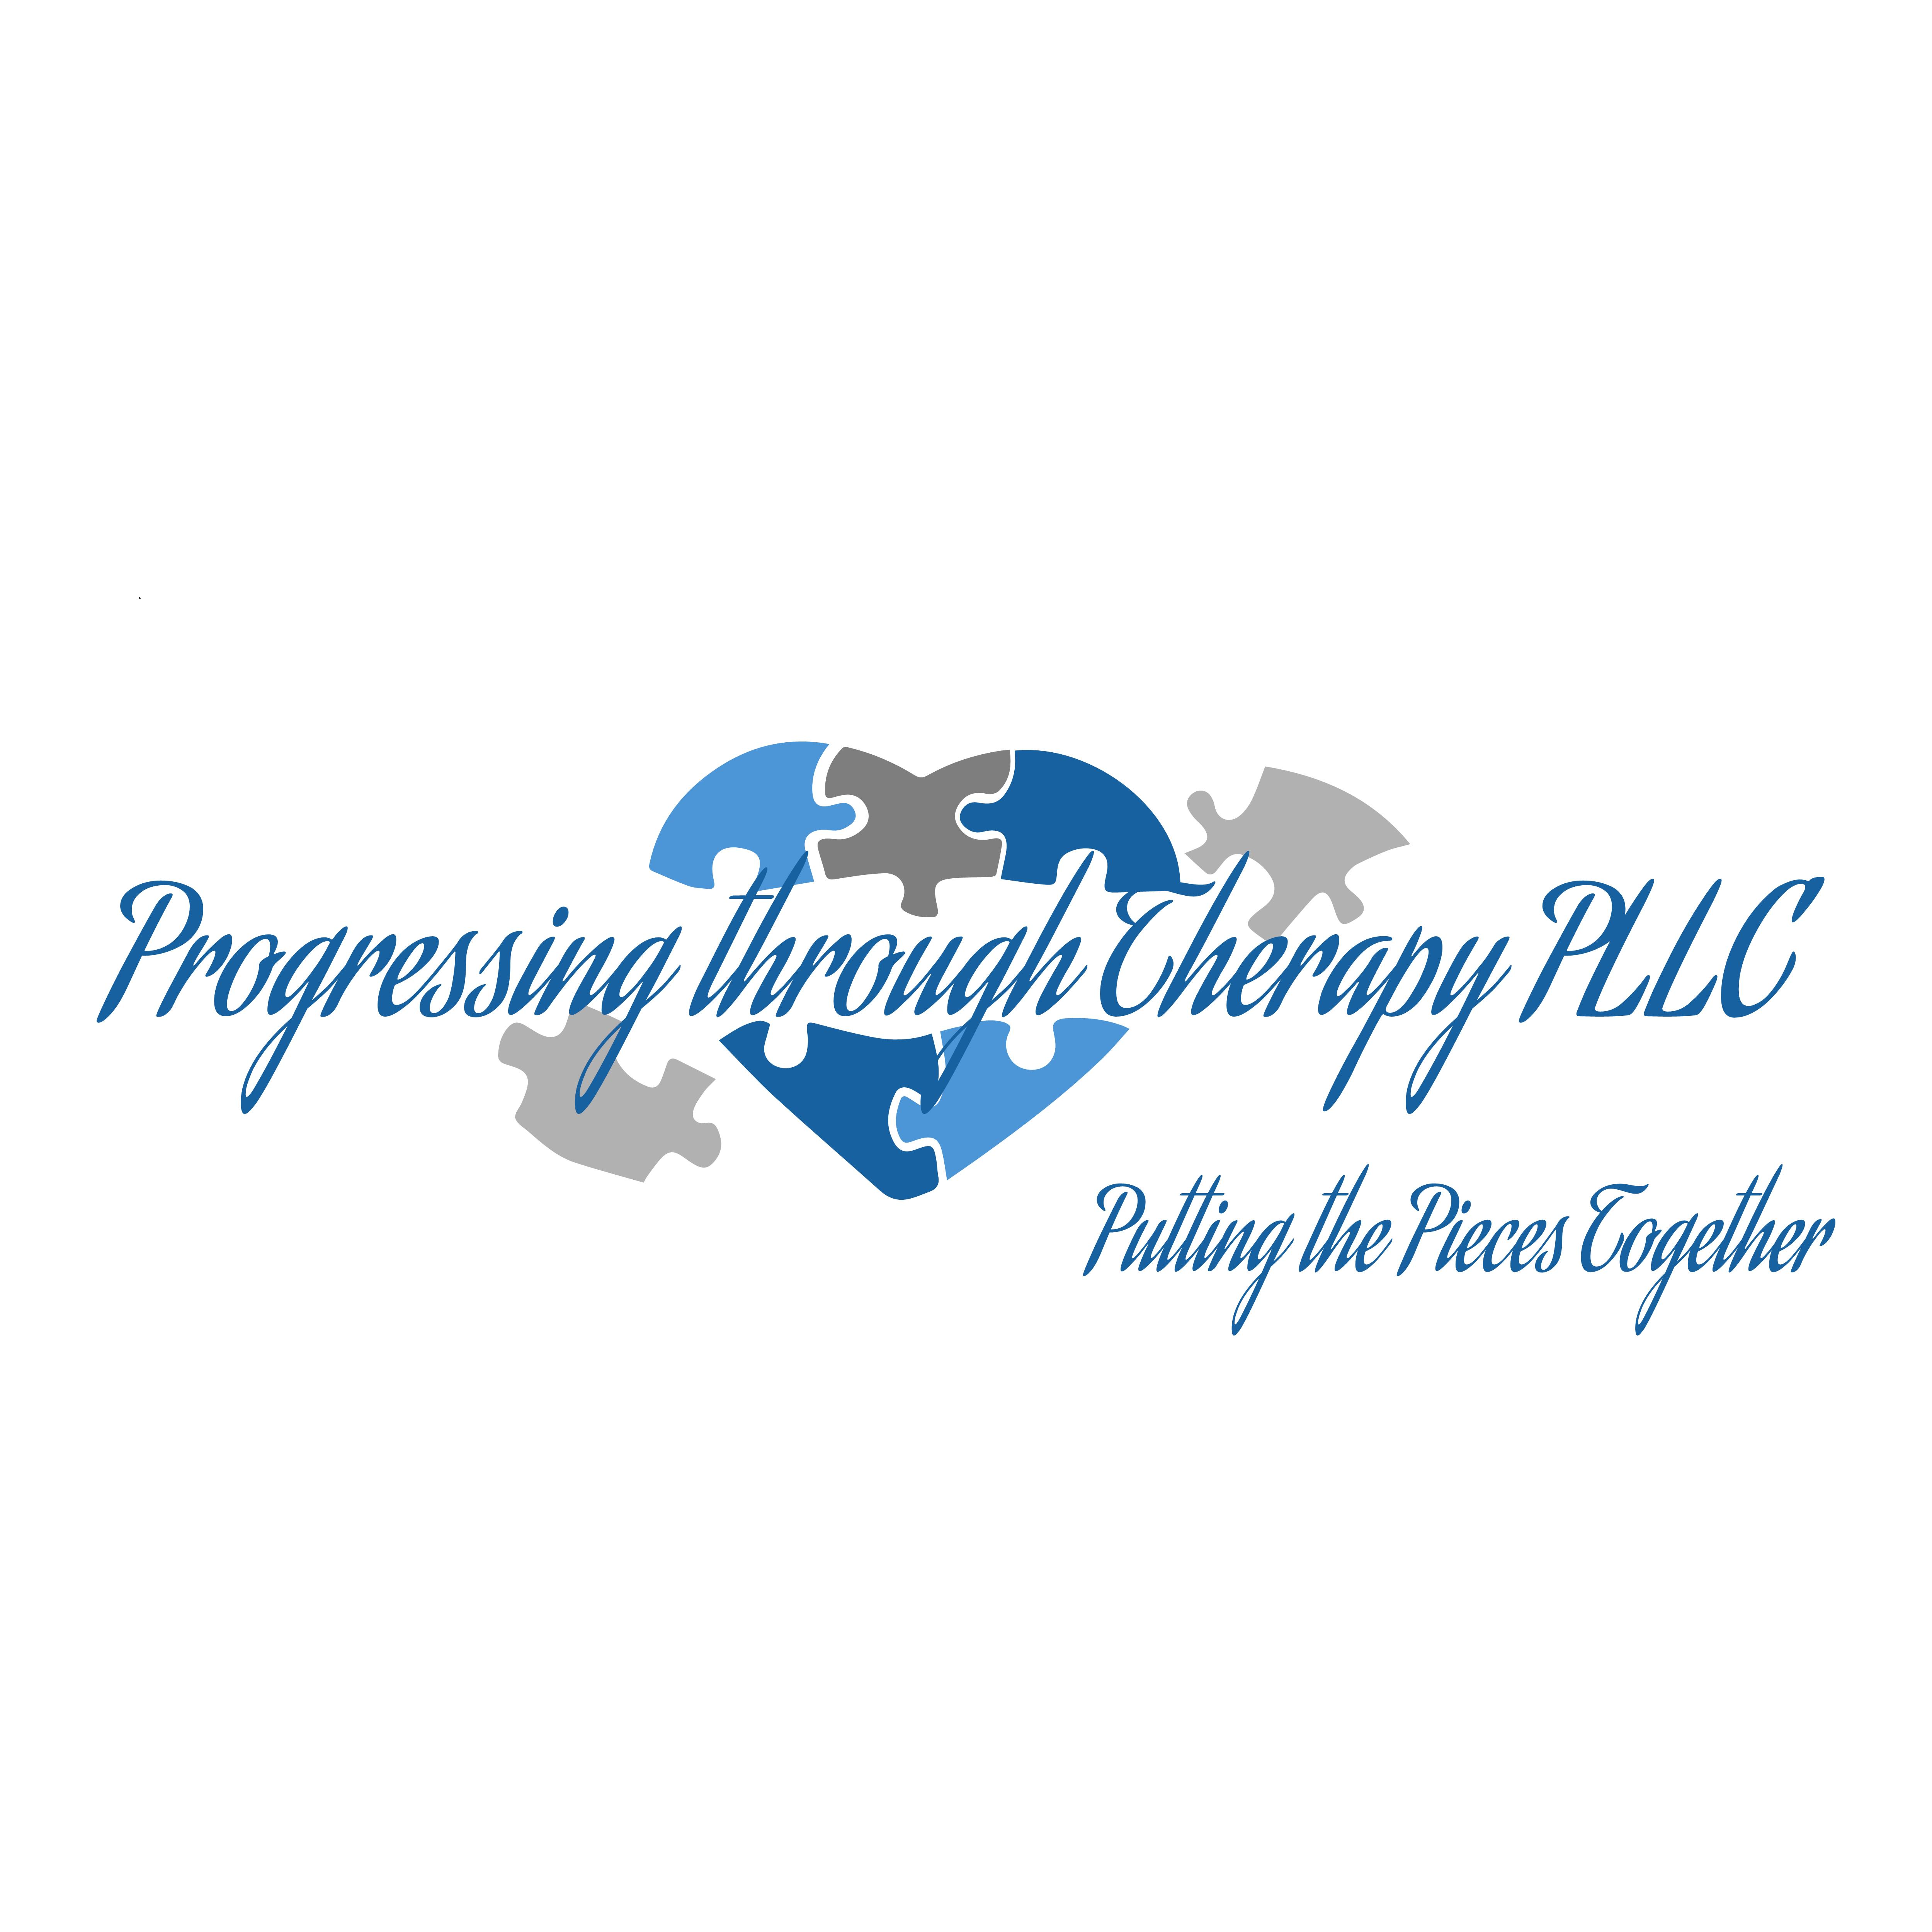 Progressing Through Therapy, PLLC